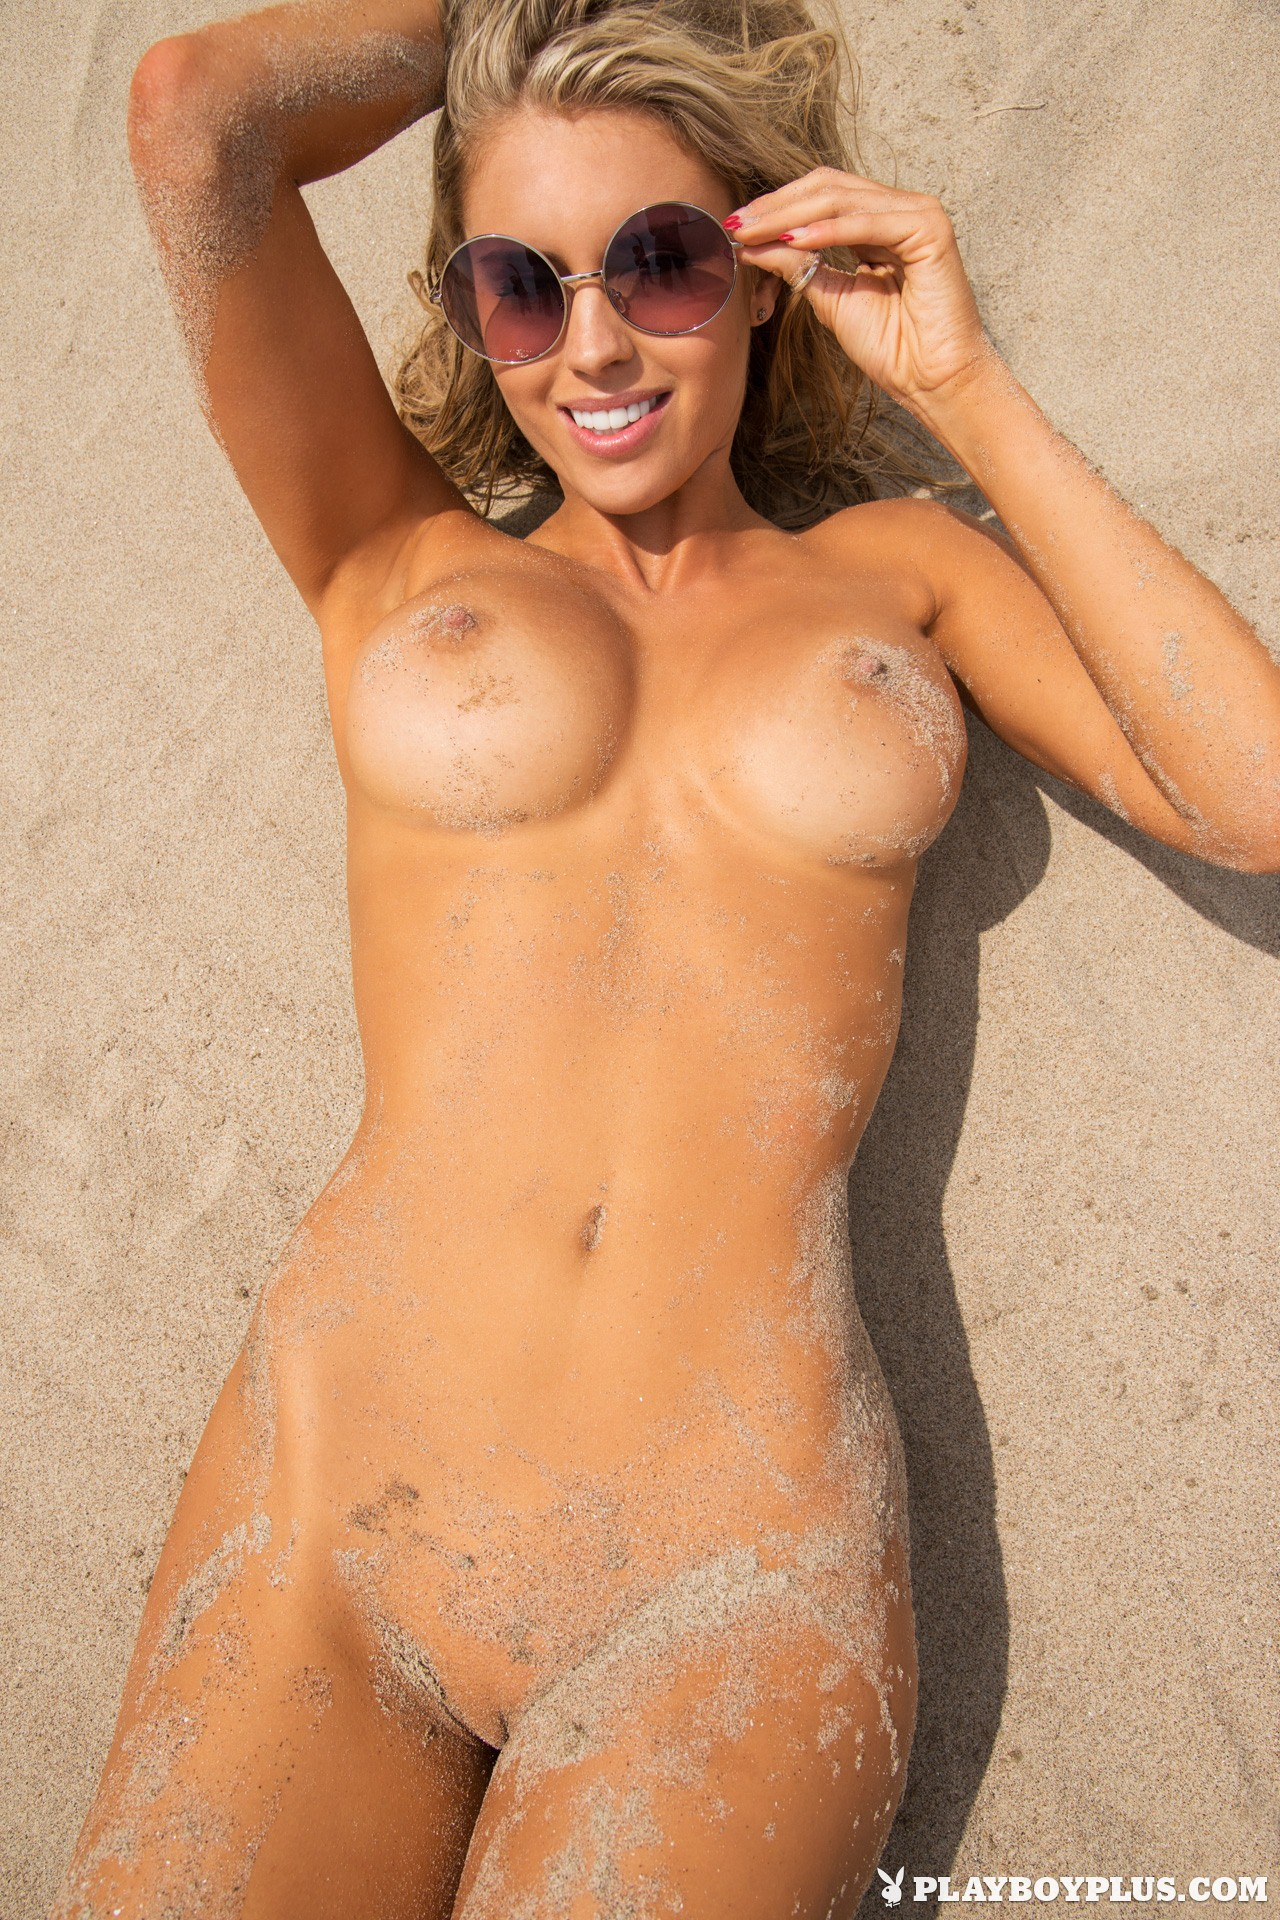 Kayla Rae Reid Nude In Beach Bum  A Tribute To Playboy-2537